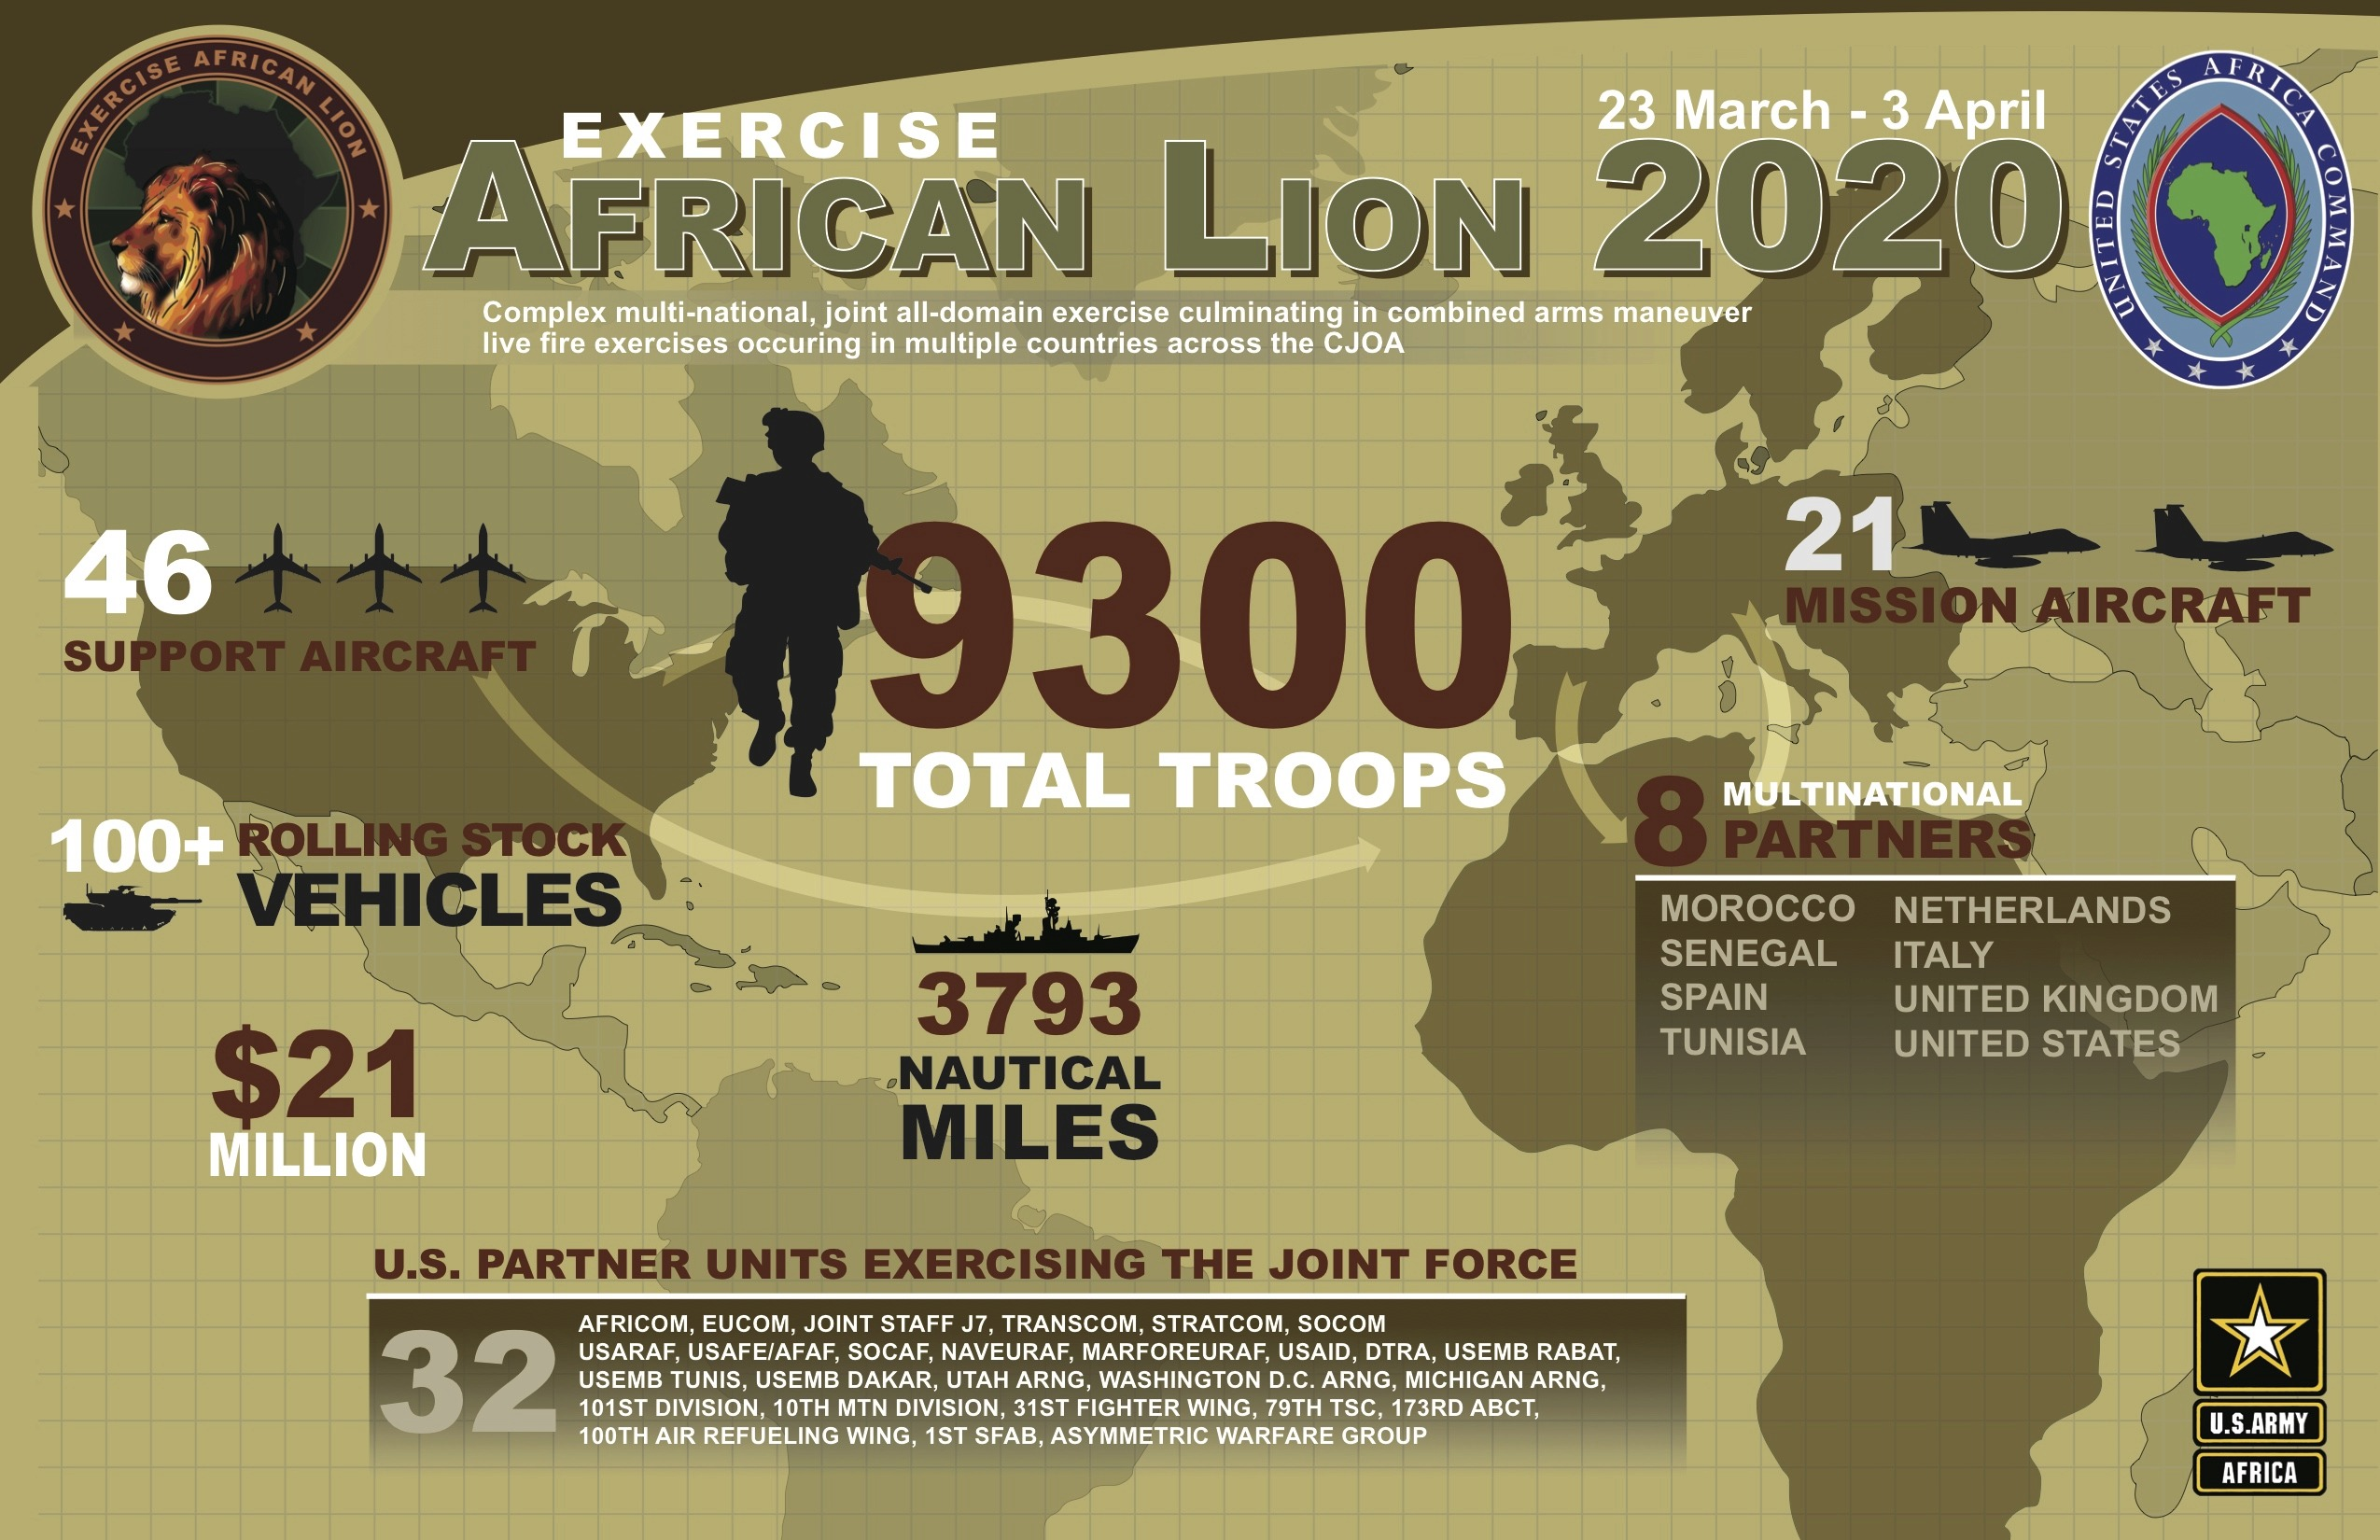 Exercice African Lion 2020 07f43310